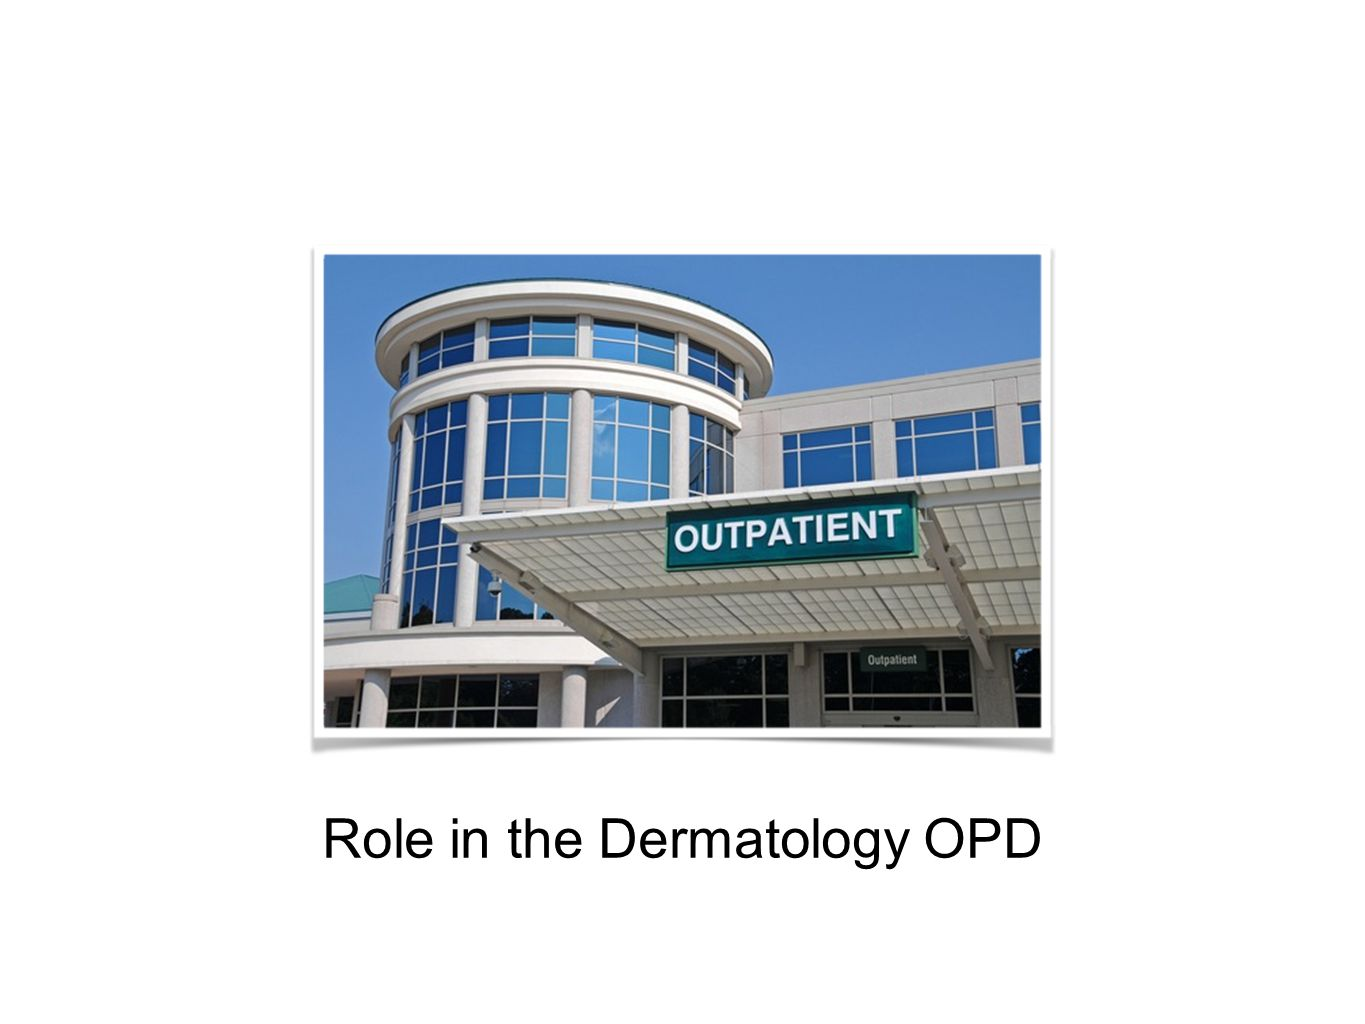 Role in the Dermatology OPD